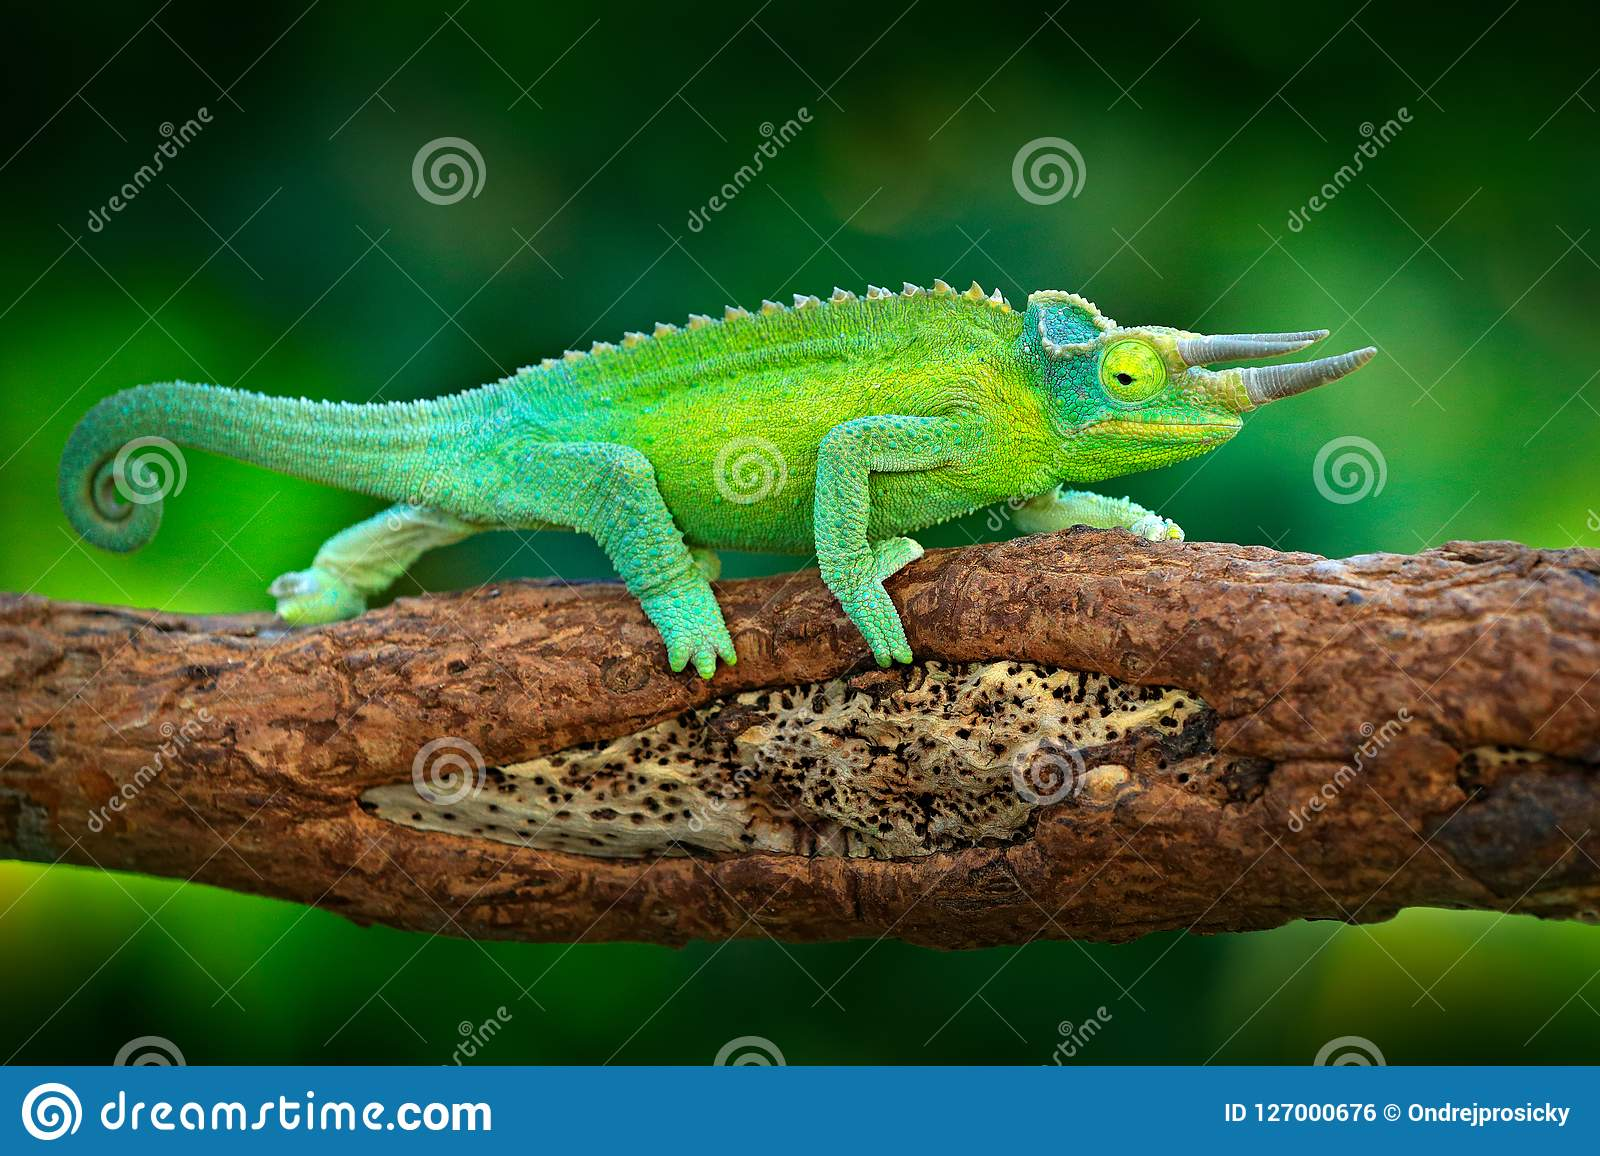 Jackson`s Chameleon, Trioceros jacksonii, sitting on the branch in forest habitat. Exotic beautiful endemic green reptile with lo